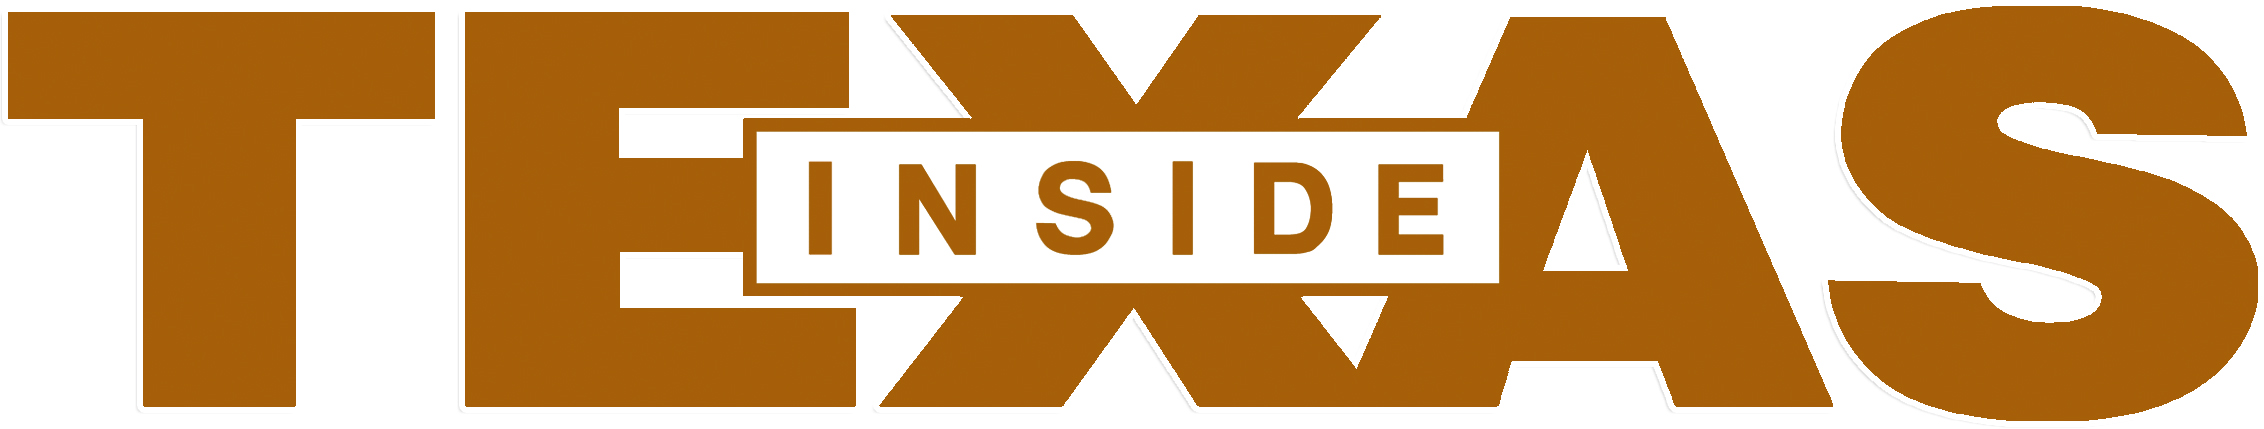 InsideTexas Joins the On3 College Sports Network